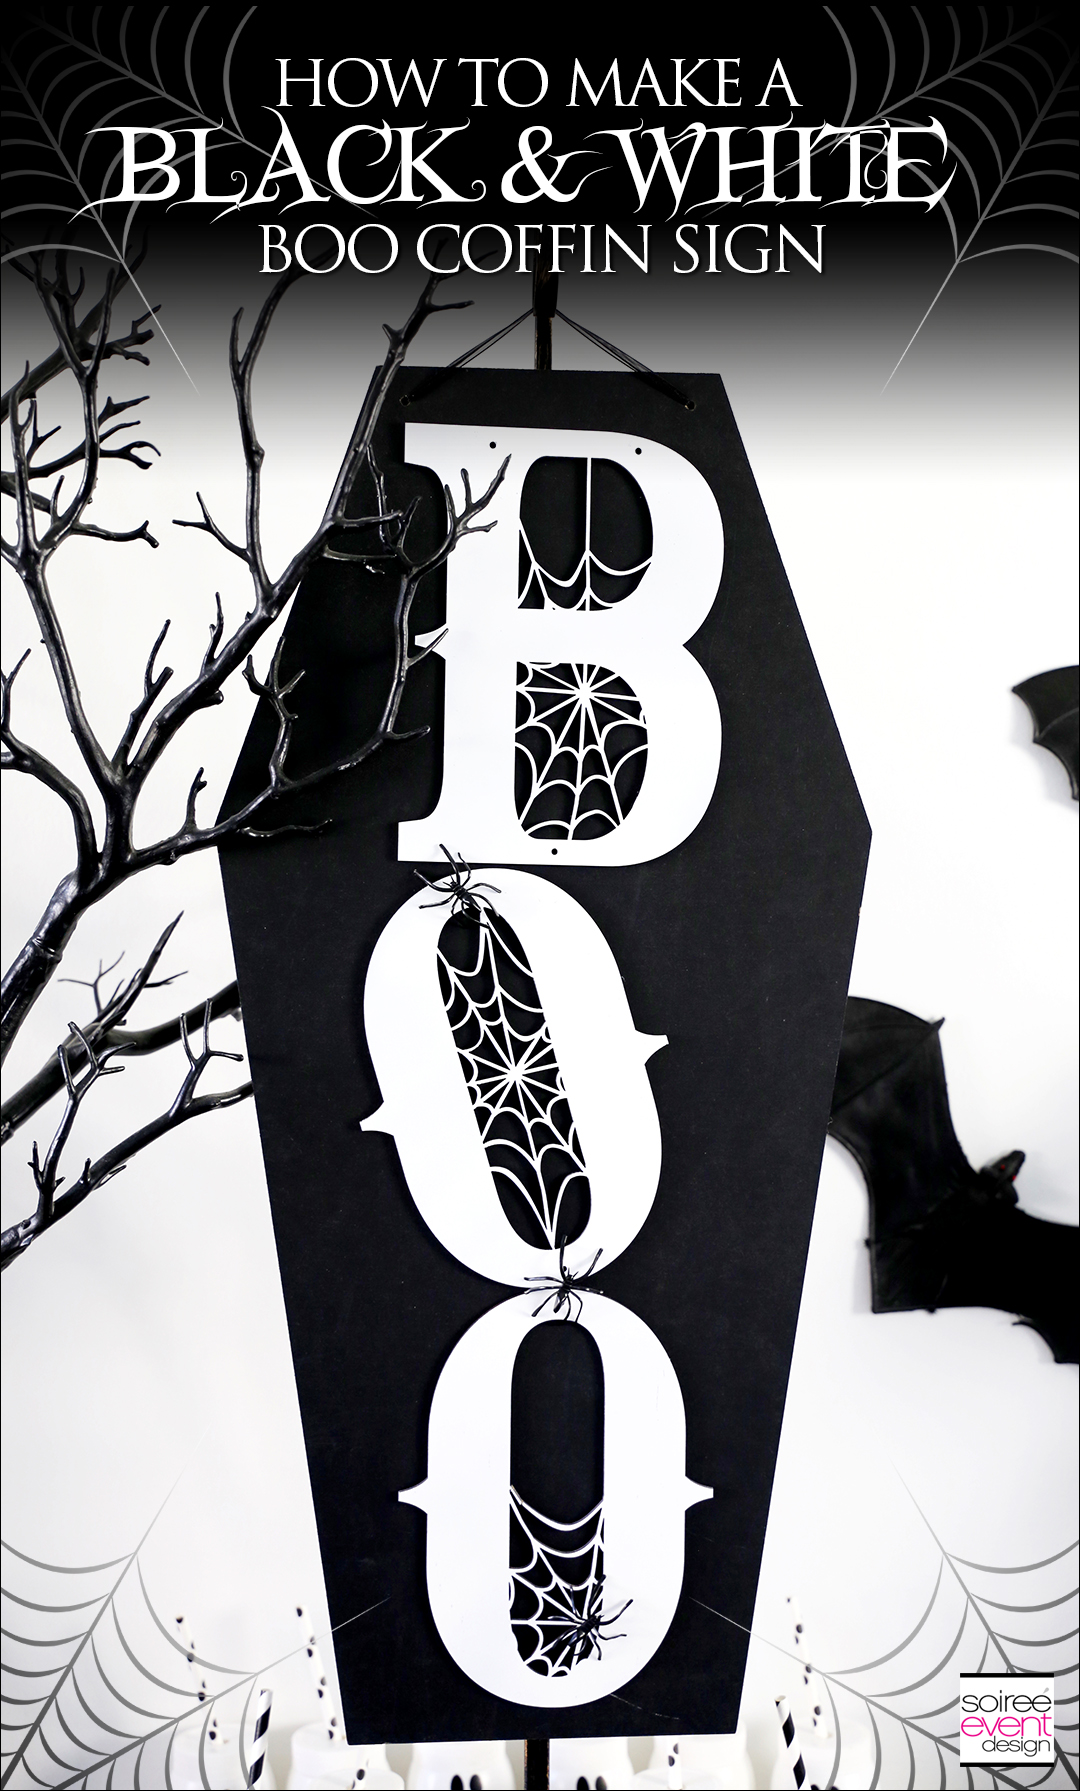 Black and White Halloween Party - DIY Boo Coffin Wall Sign